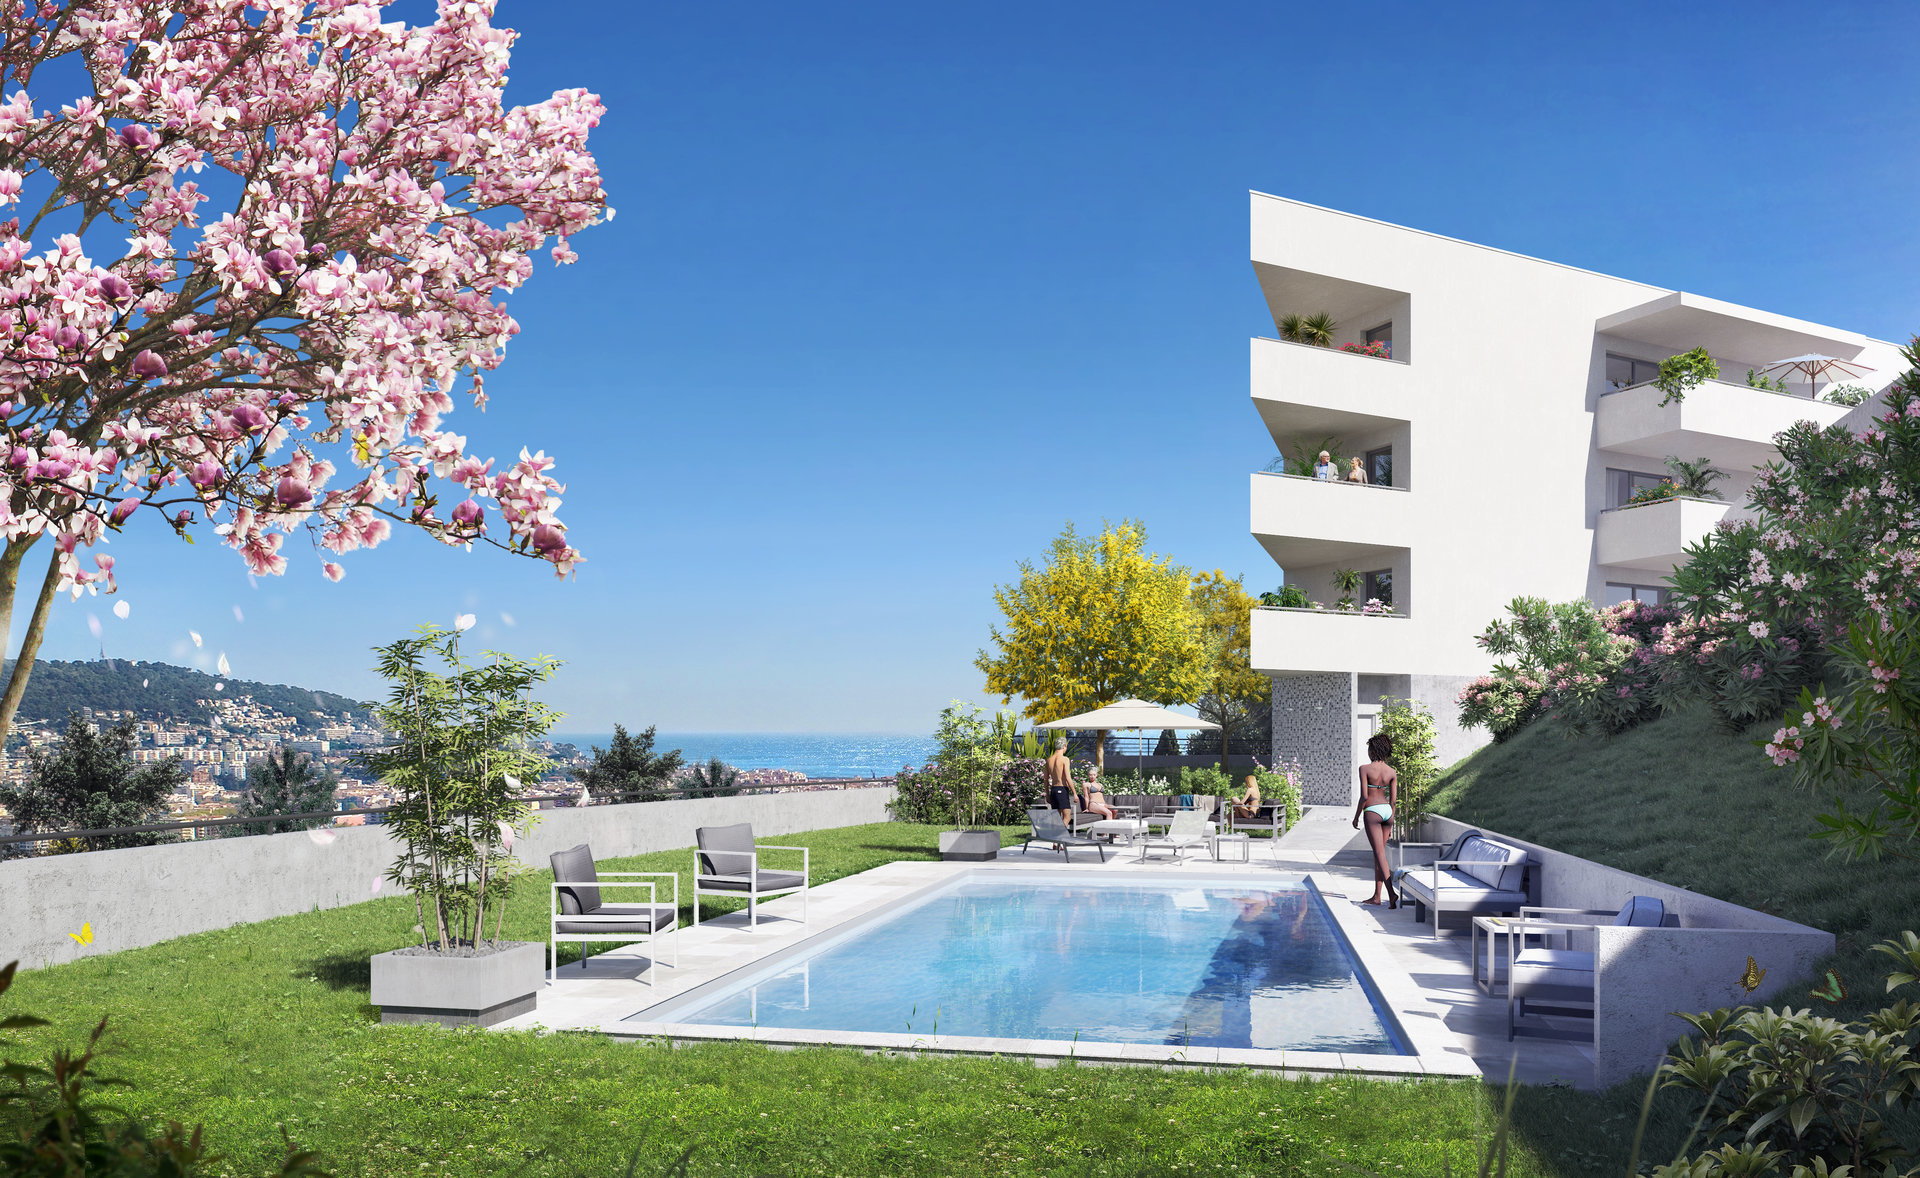 NICE - French Riviera - luxury 1 bed Apartment with sea view